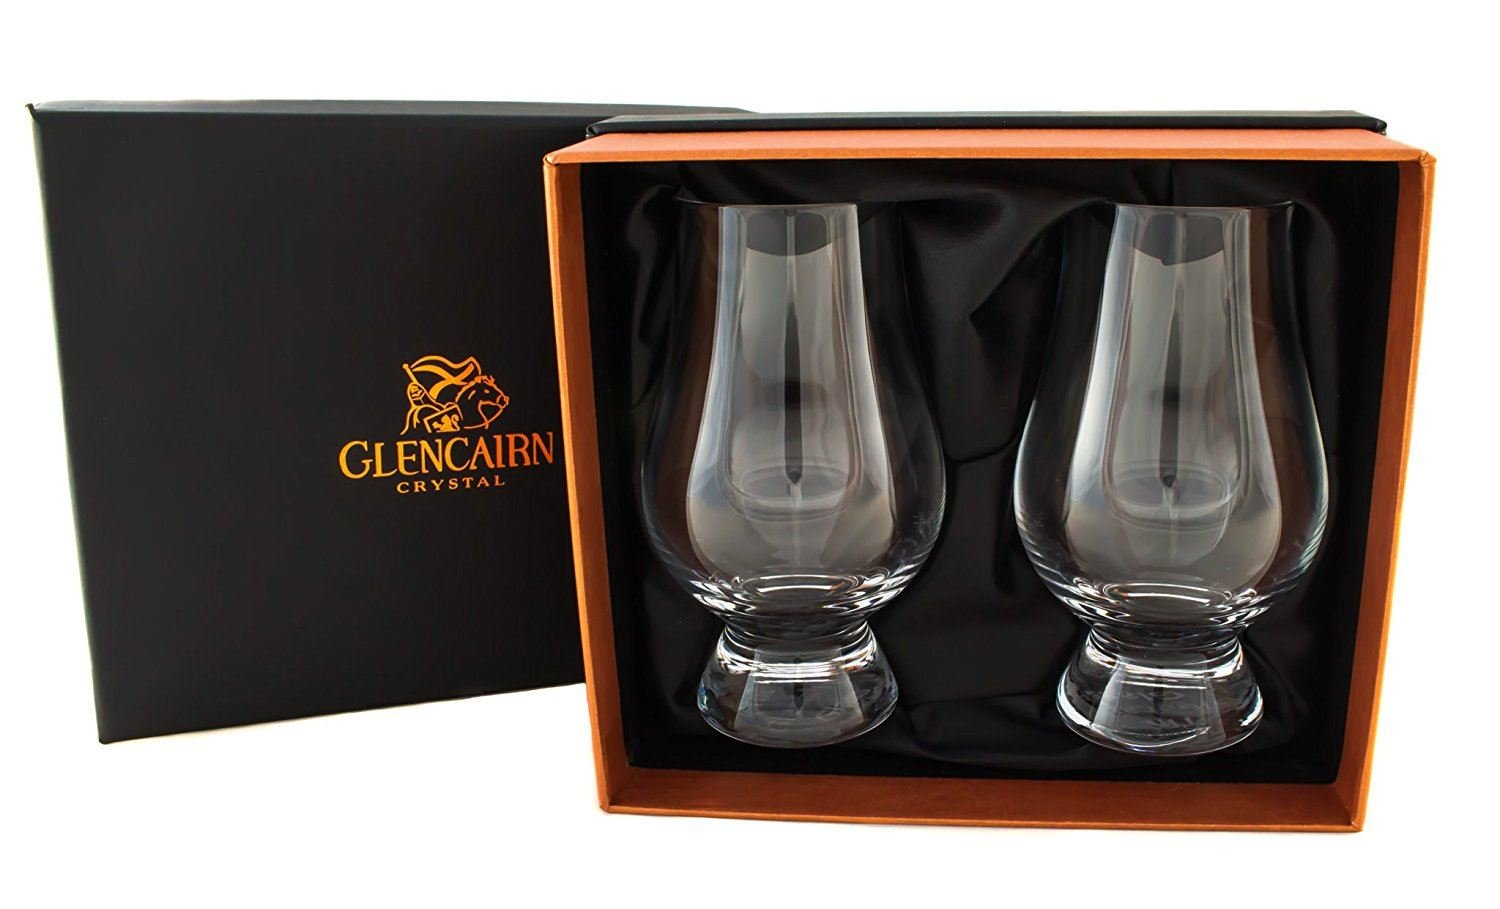 Glencairn Crystal Official Whisky Glasses in Presentation Box | Set of 2